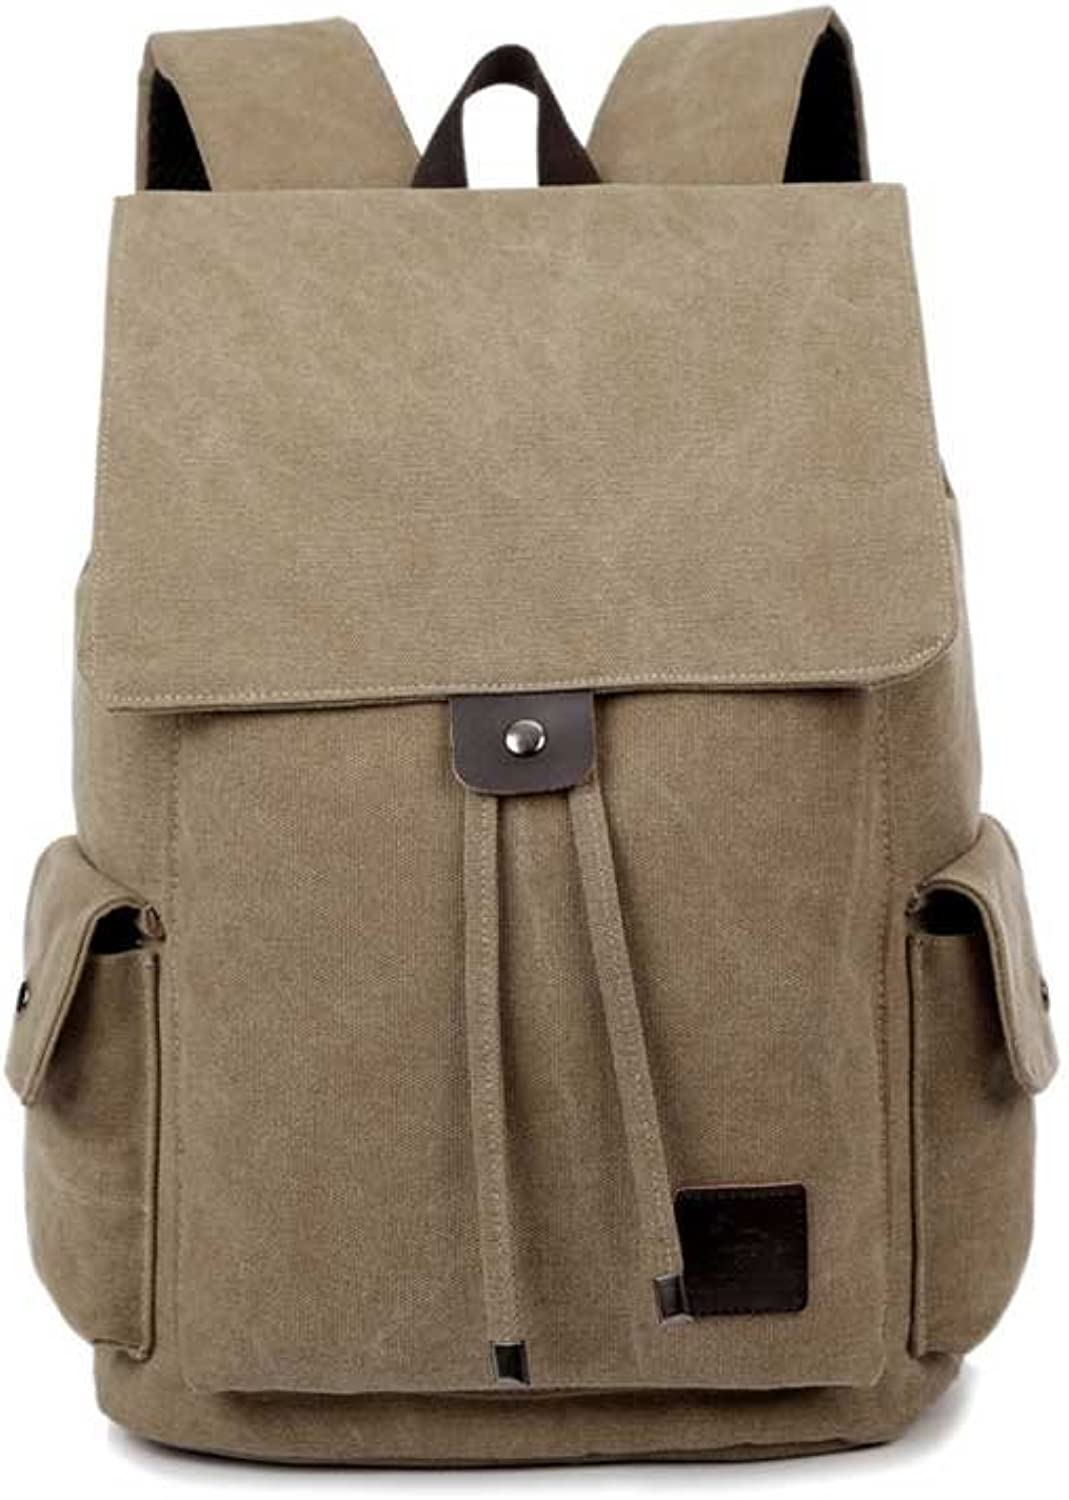 Backpack Leisure Drawstring Backpack Retro Canvas Backpack Handbags Outdoor Large Capacity Travel Bag